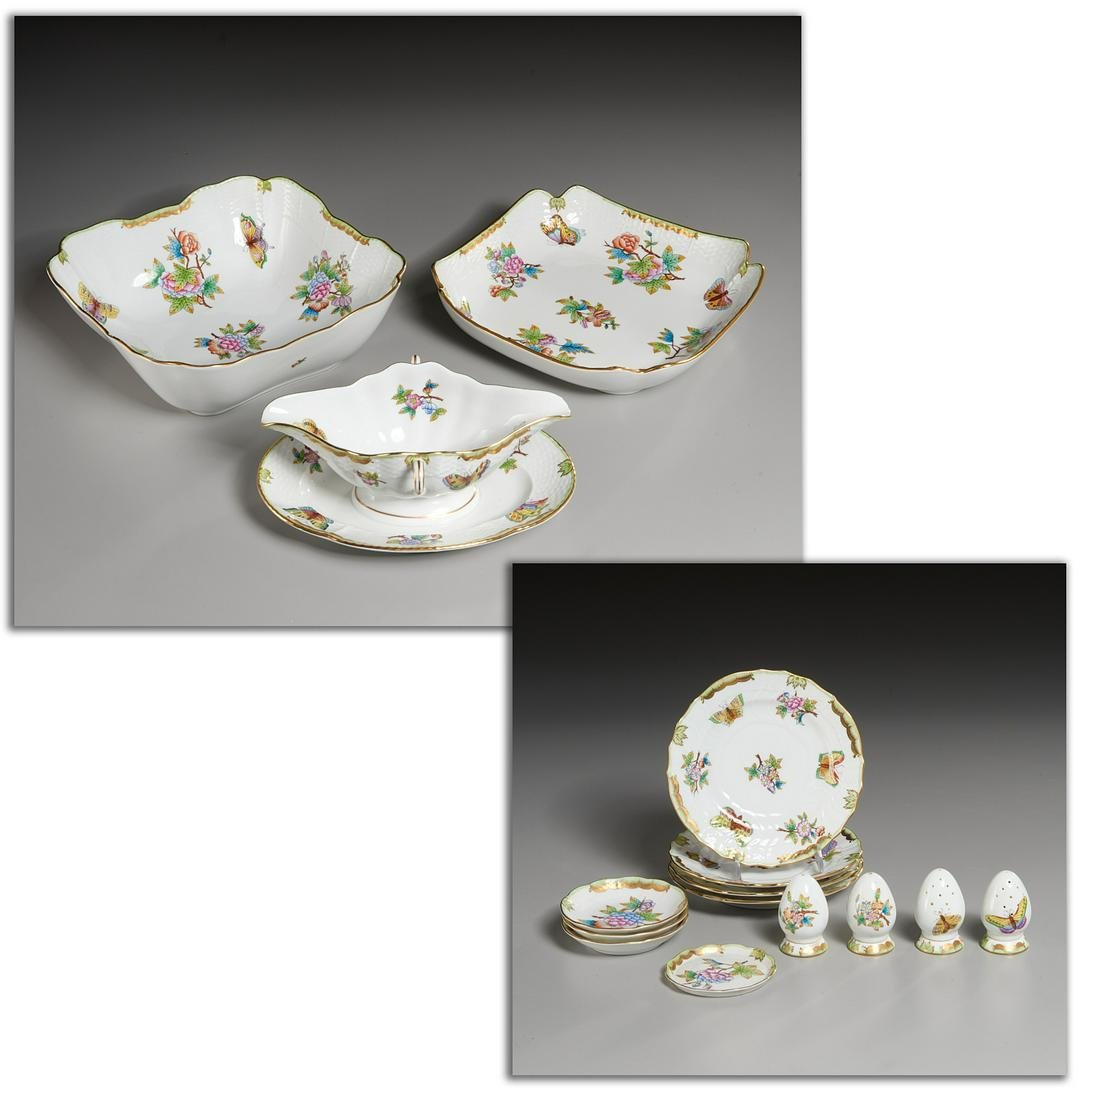 (15) Herend Porcelain Table Articles